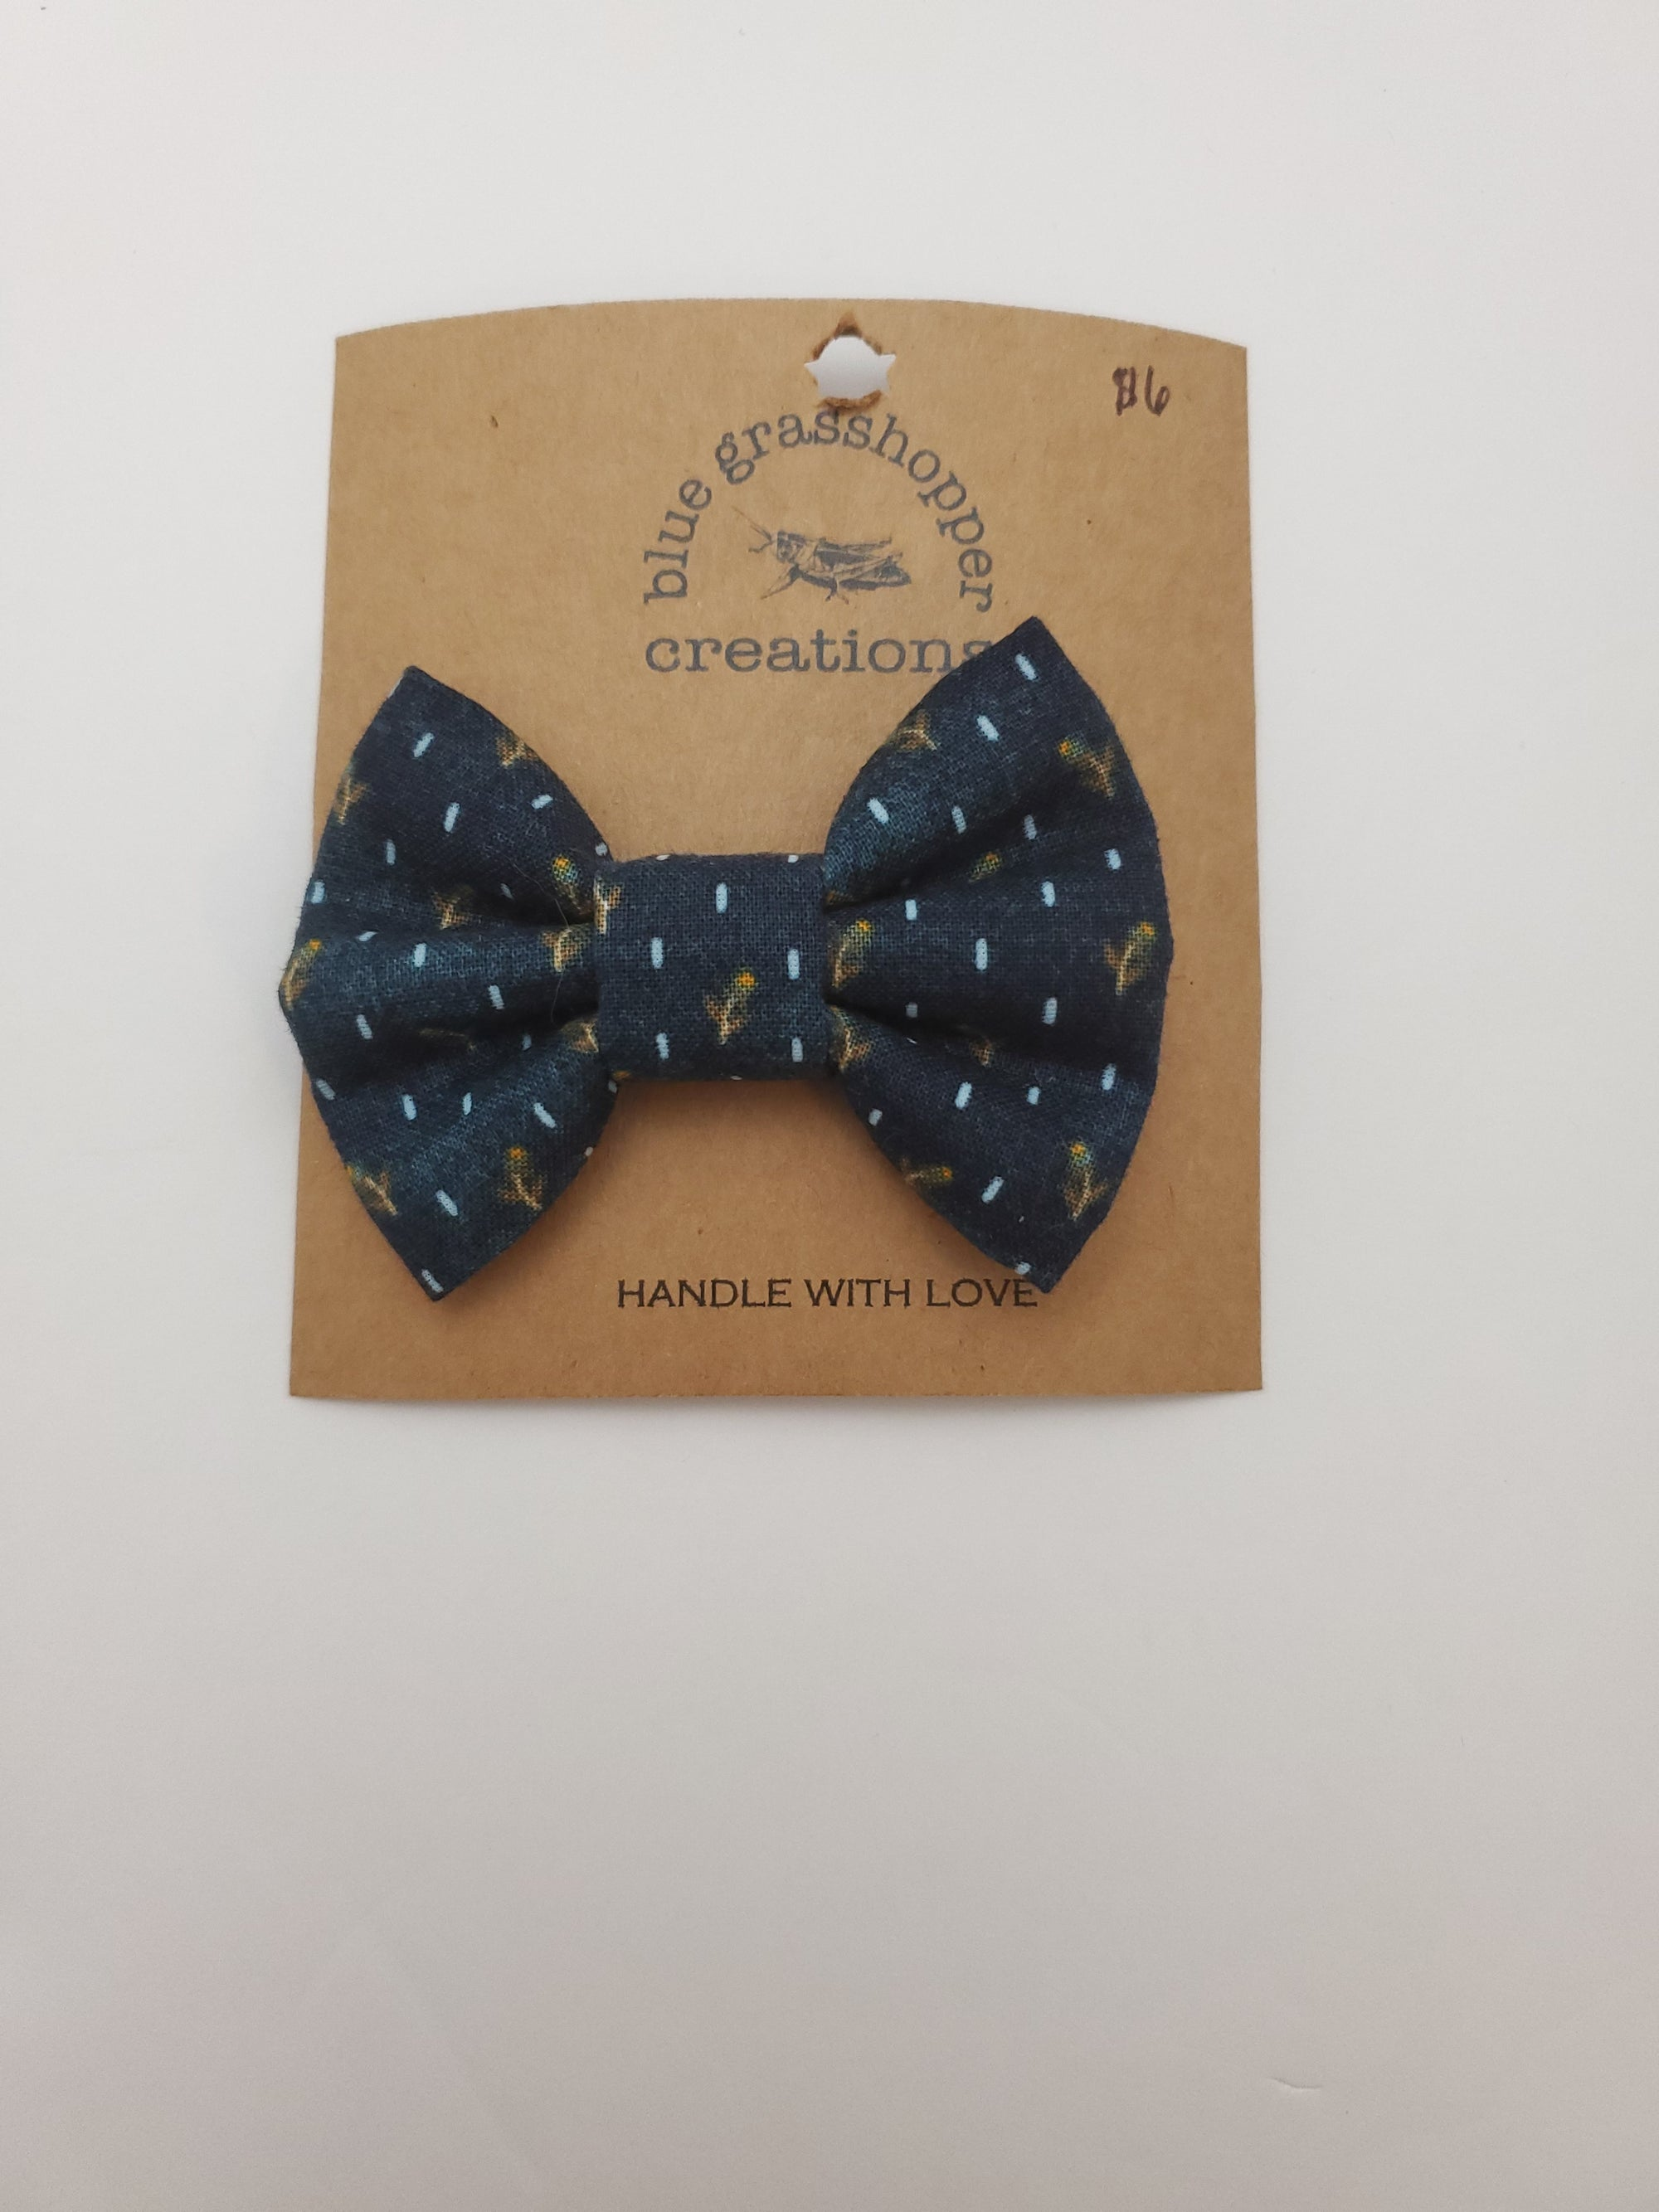 Blue Grasshopper Creations Bow / Bow Tie